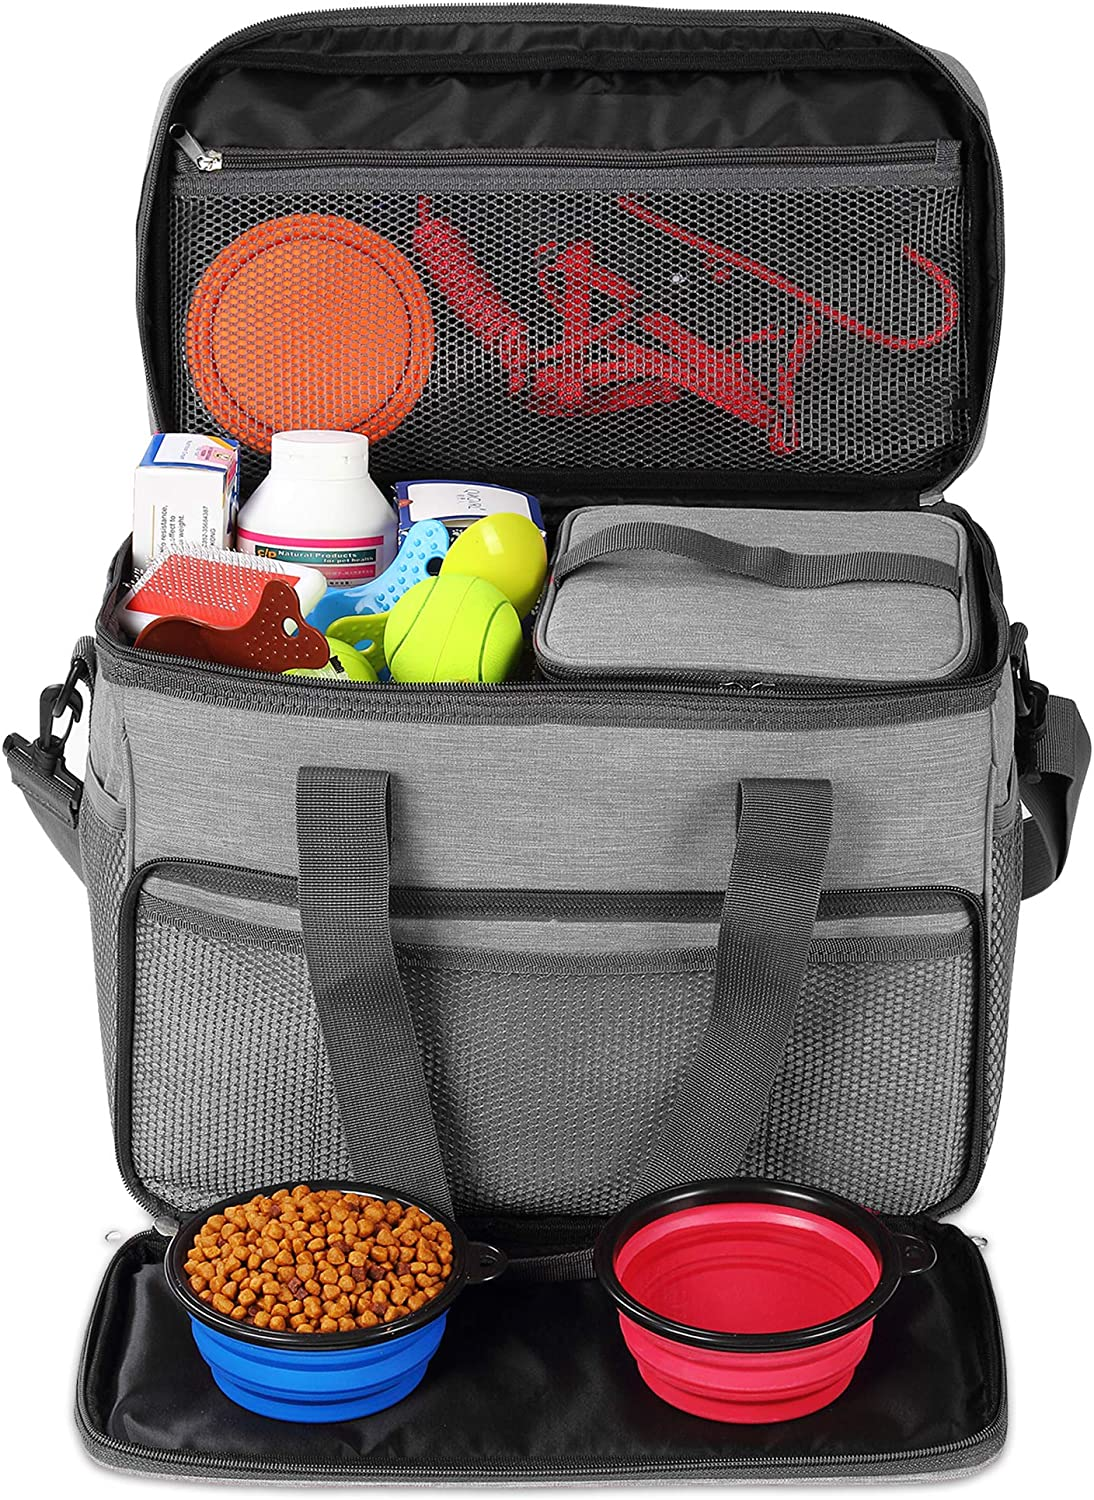 KOPEKS Dog Cat Pet Travel Bag Thermal Bag with Compartments Bowl and Drinker Foldable Travel Kit